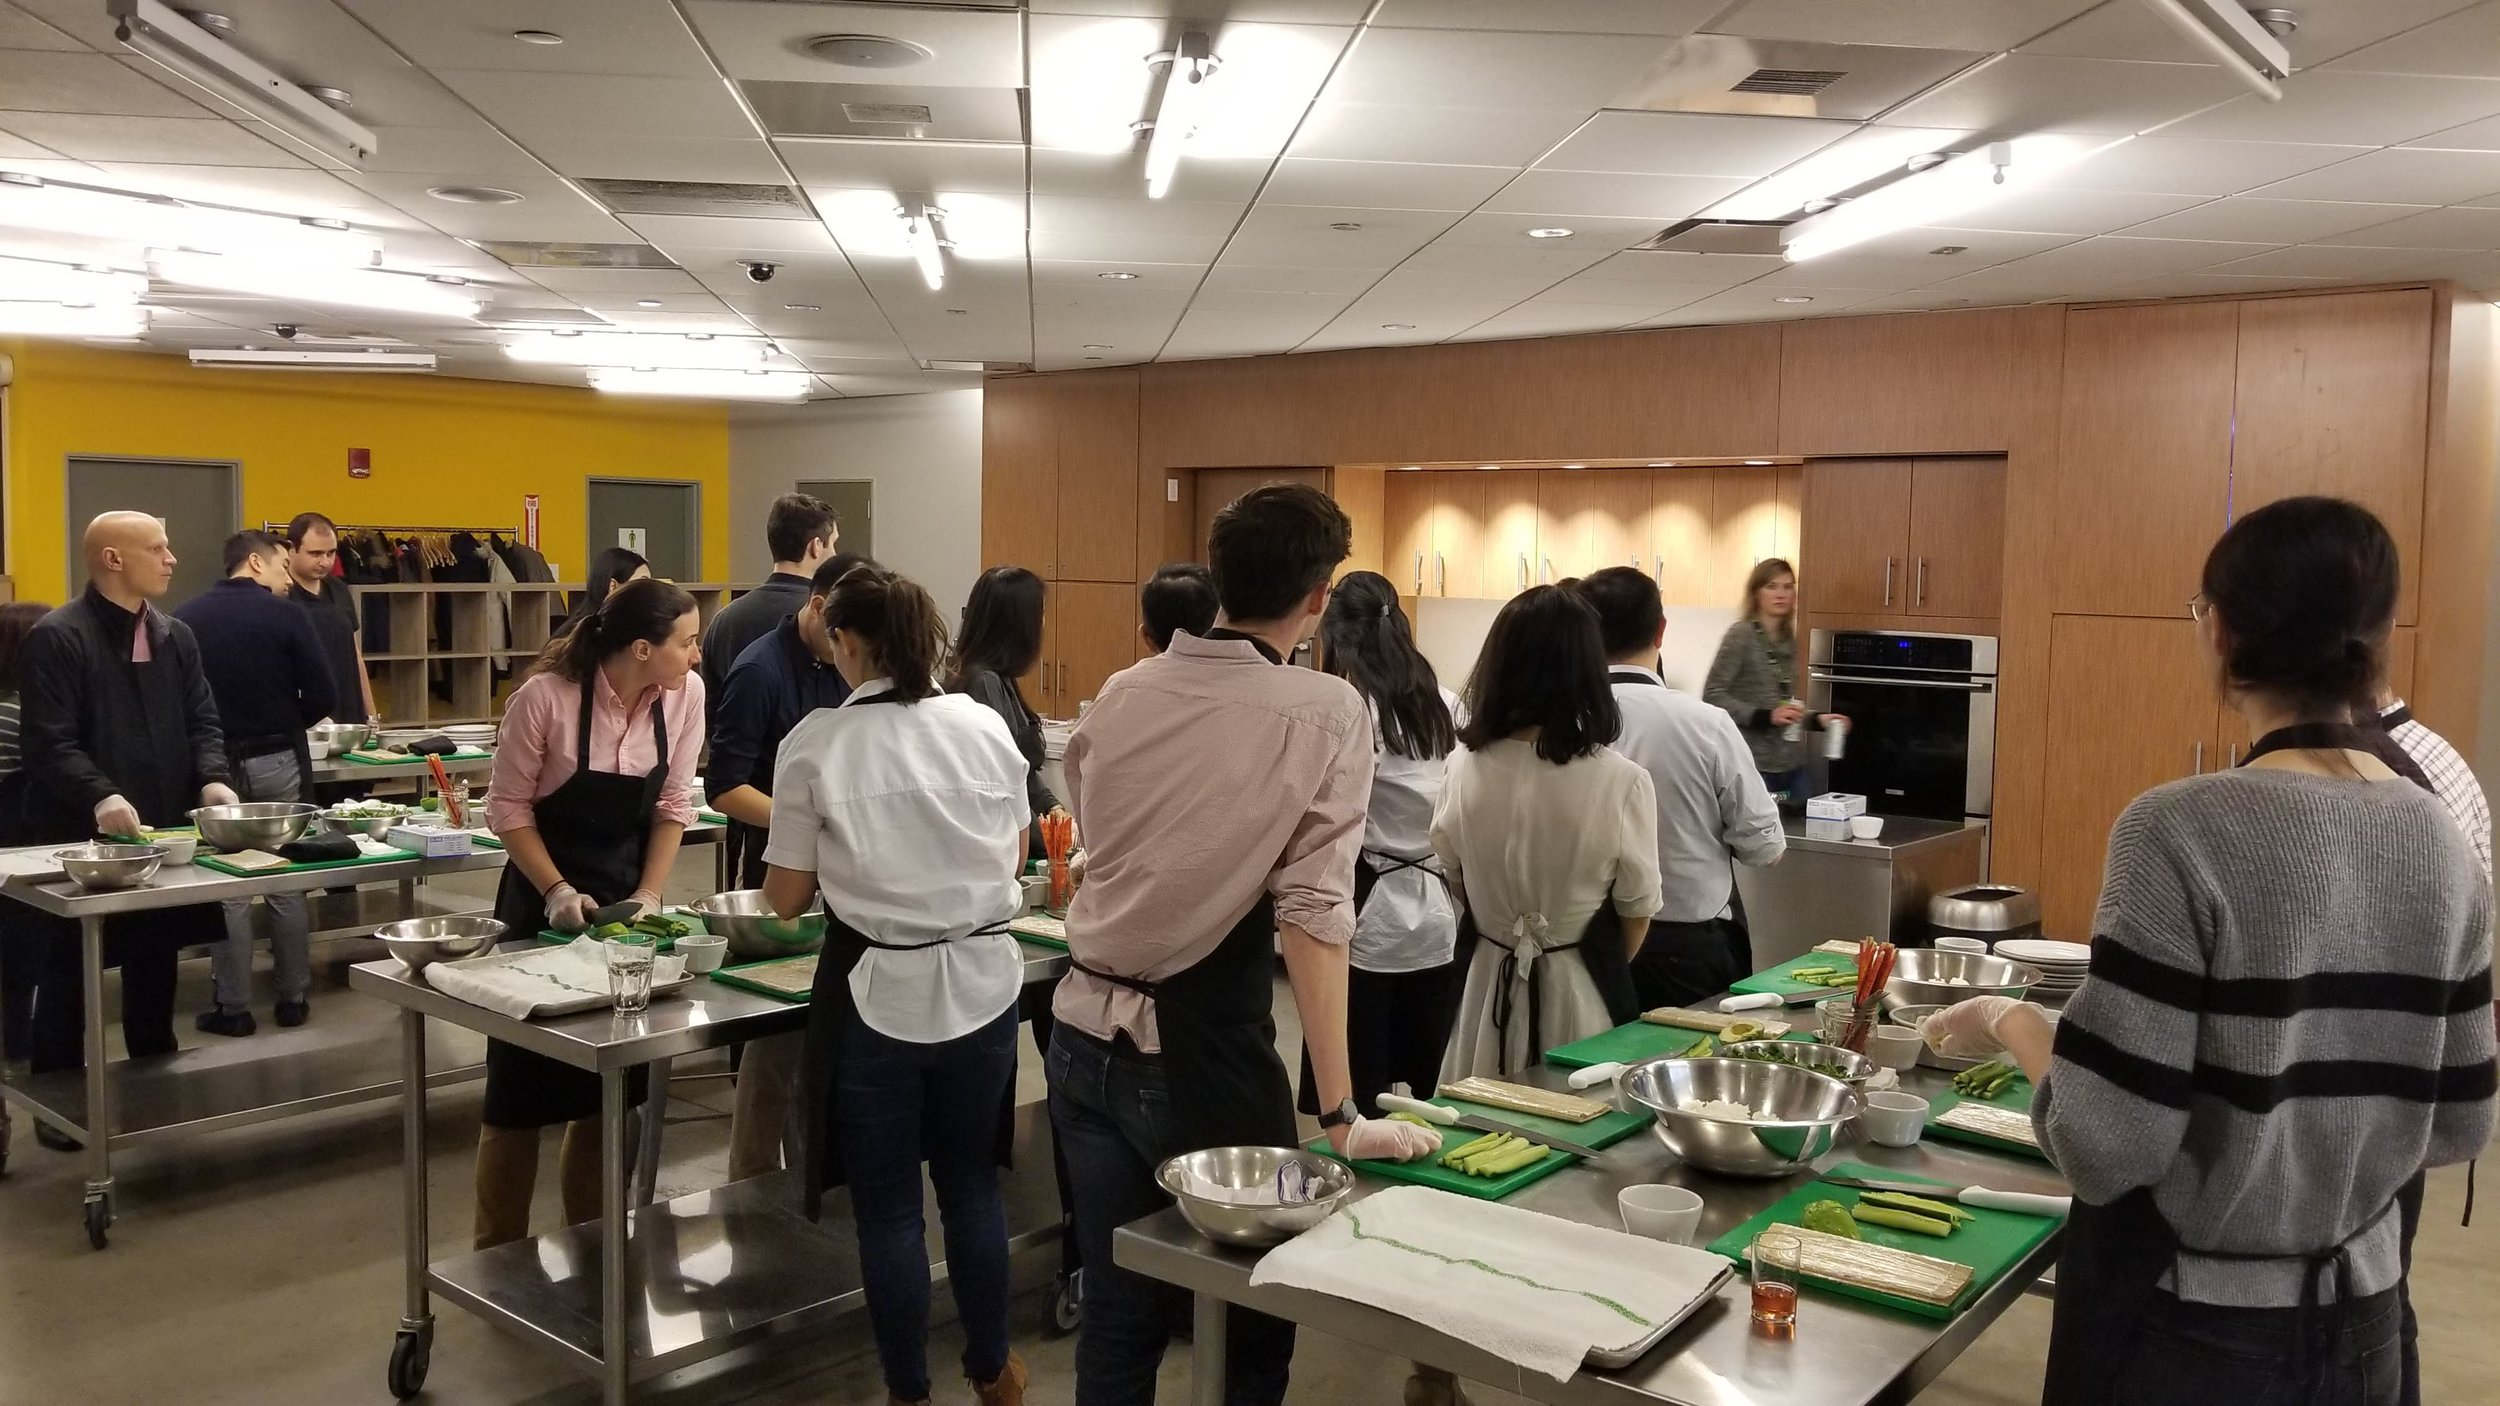 Sushi Making Class - March 20, 2019